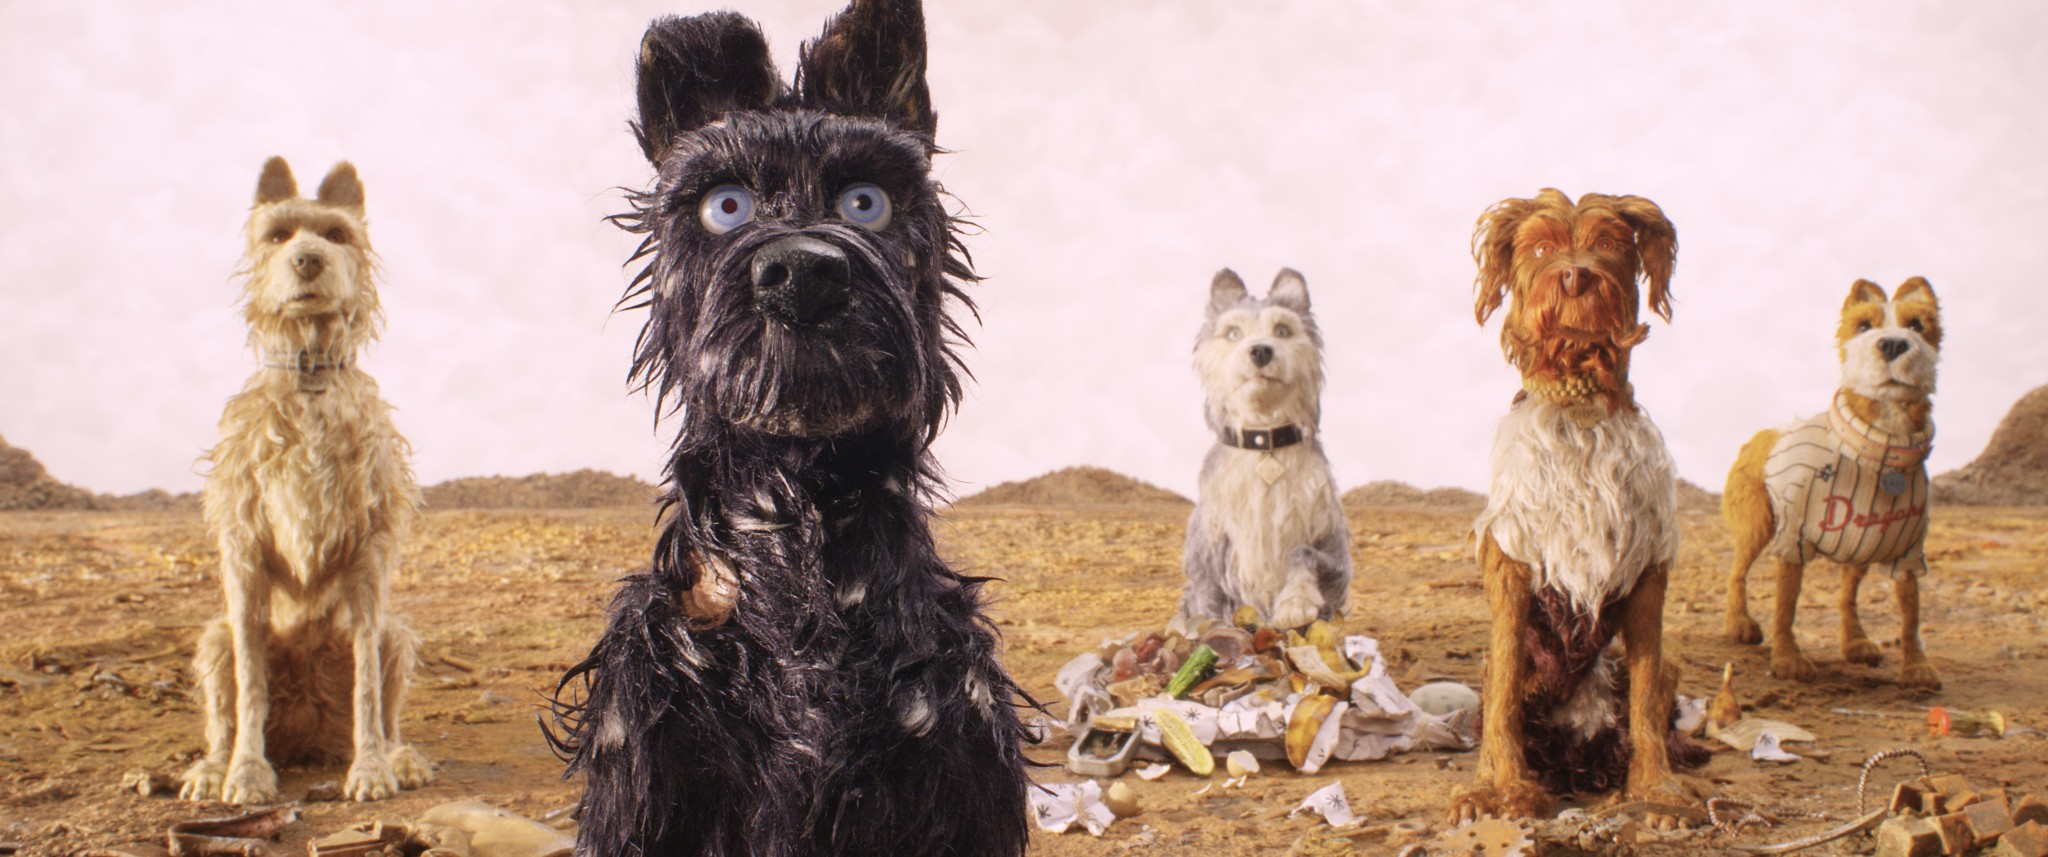 3 28 movies1   isle of dogs